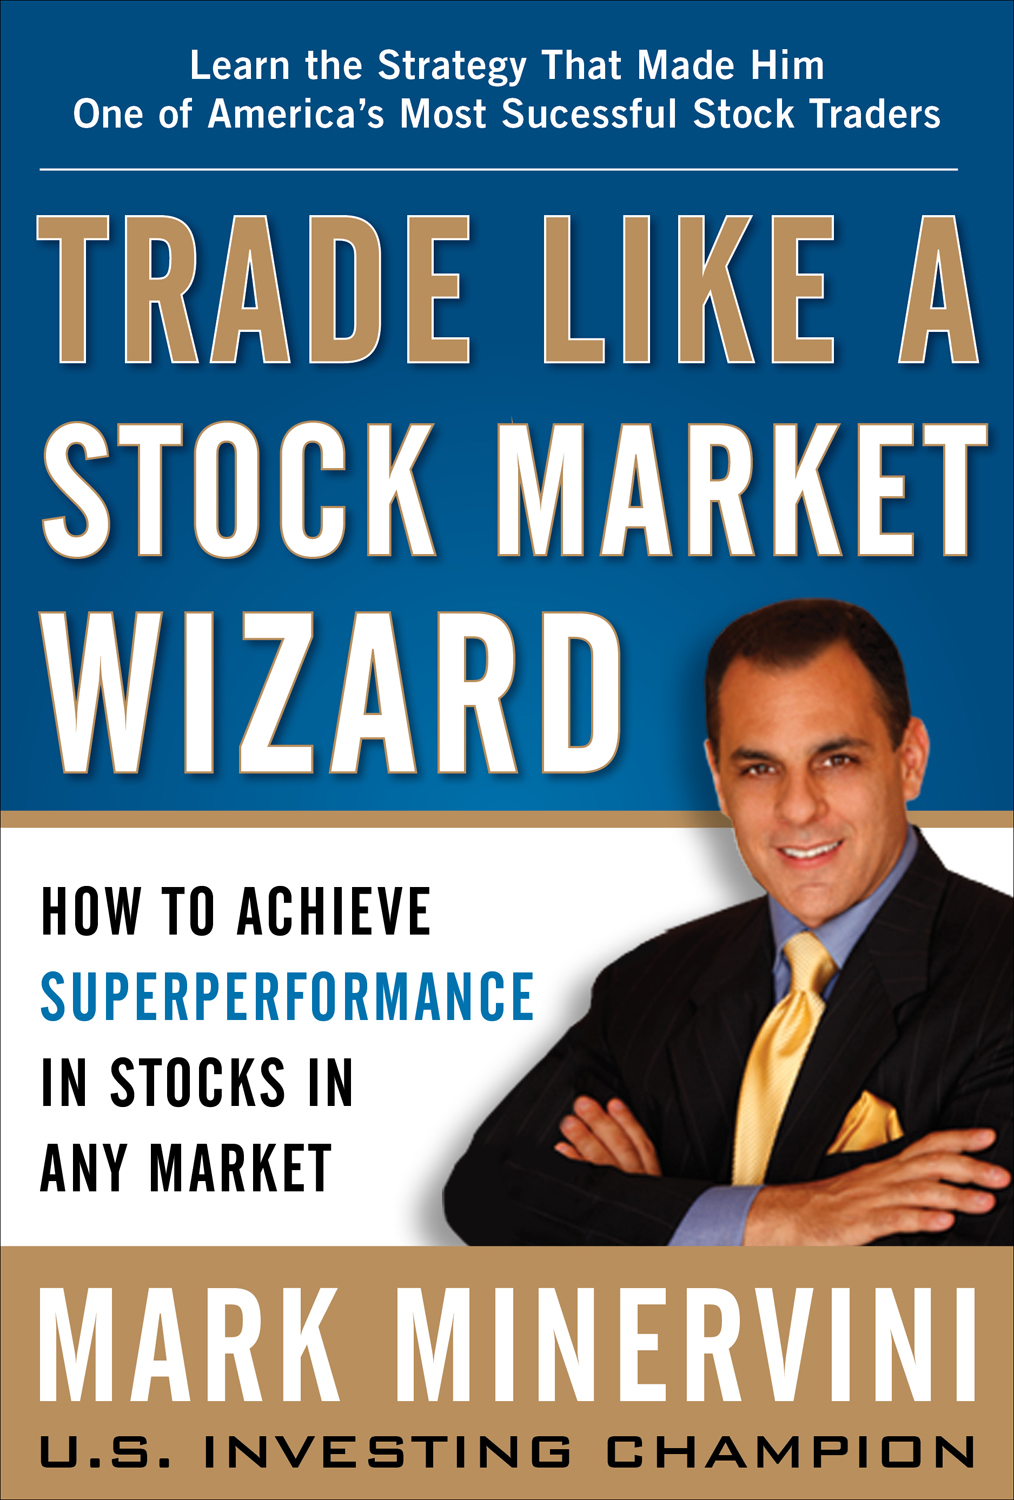 Market Wizards Minervini and Ryan Reveal Stock Trading Secrets at Upcoming Investment Seminar